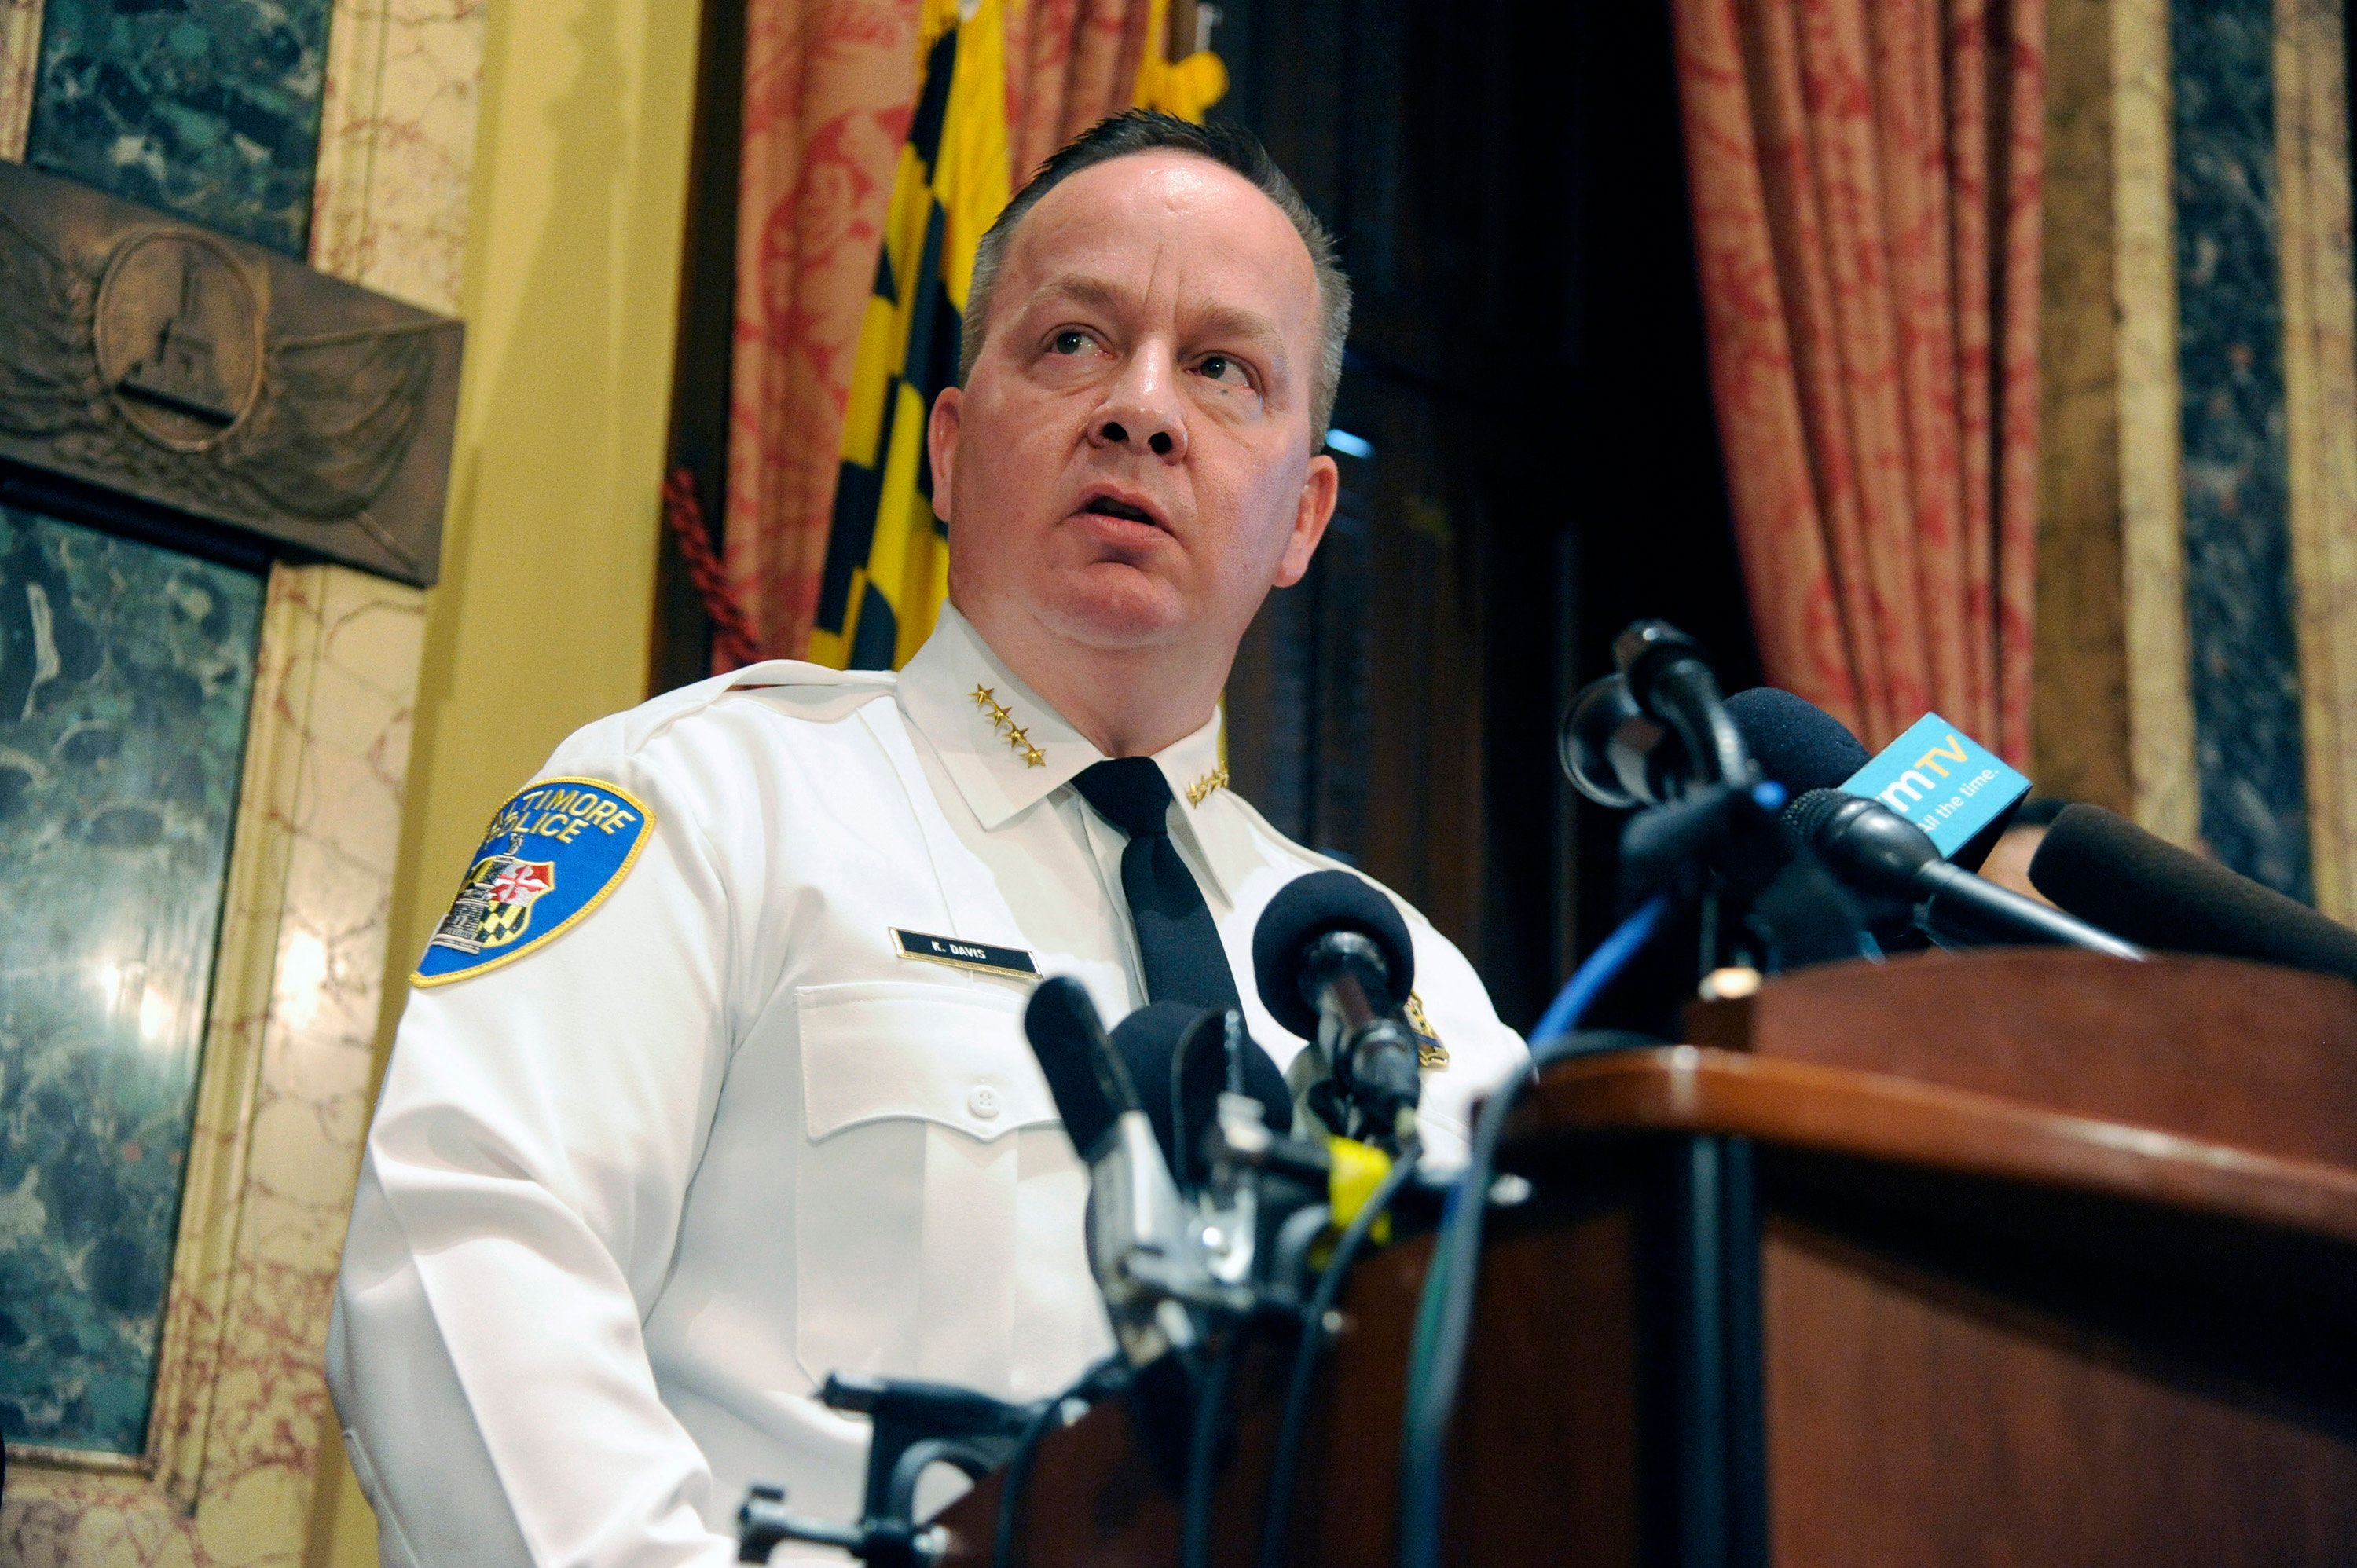 Baltimore Police couldn't care less about sexual assault victims, a federal investigation found.